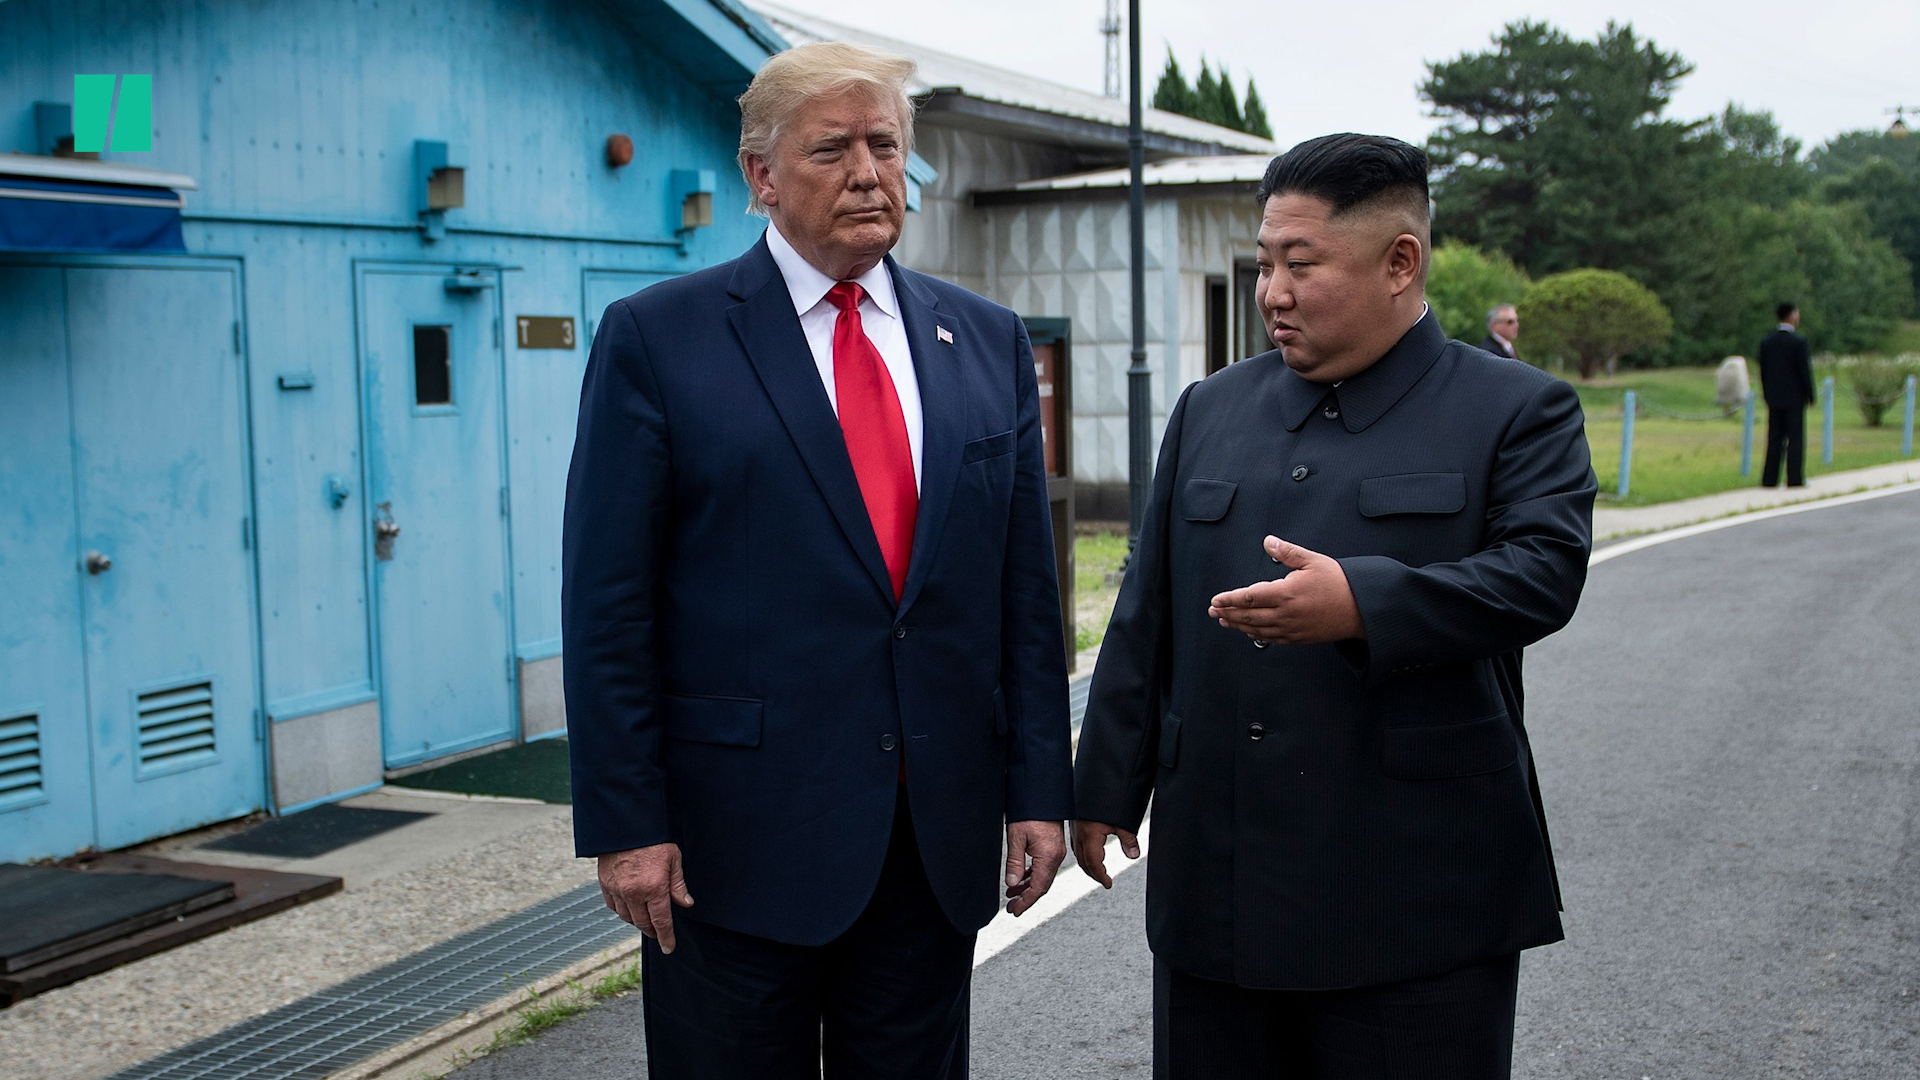 Photo Of Trump With Pal Kim Jong Un Now On White House Wall